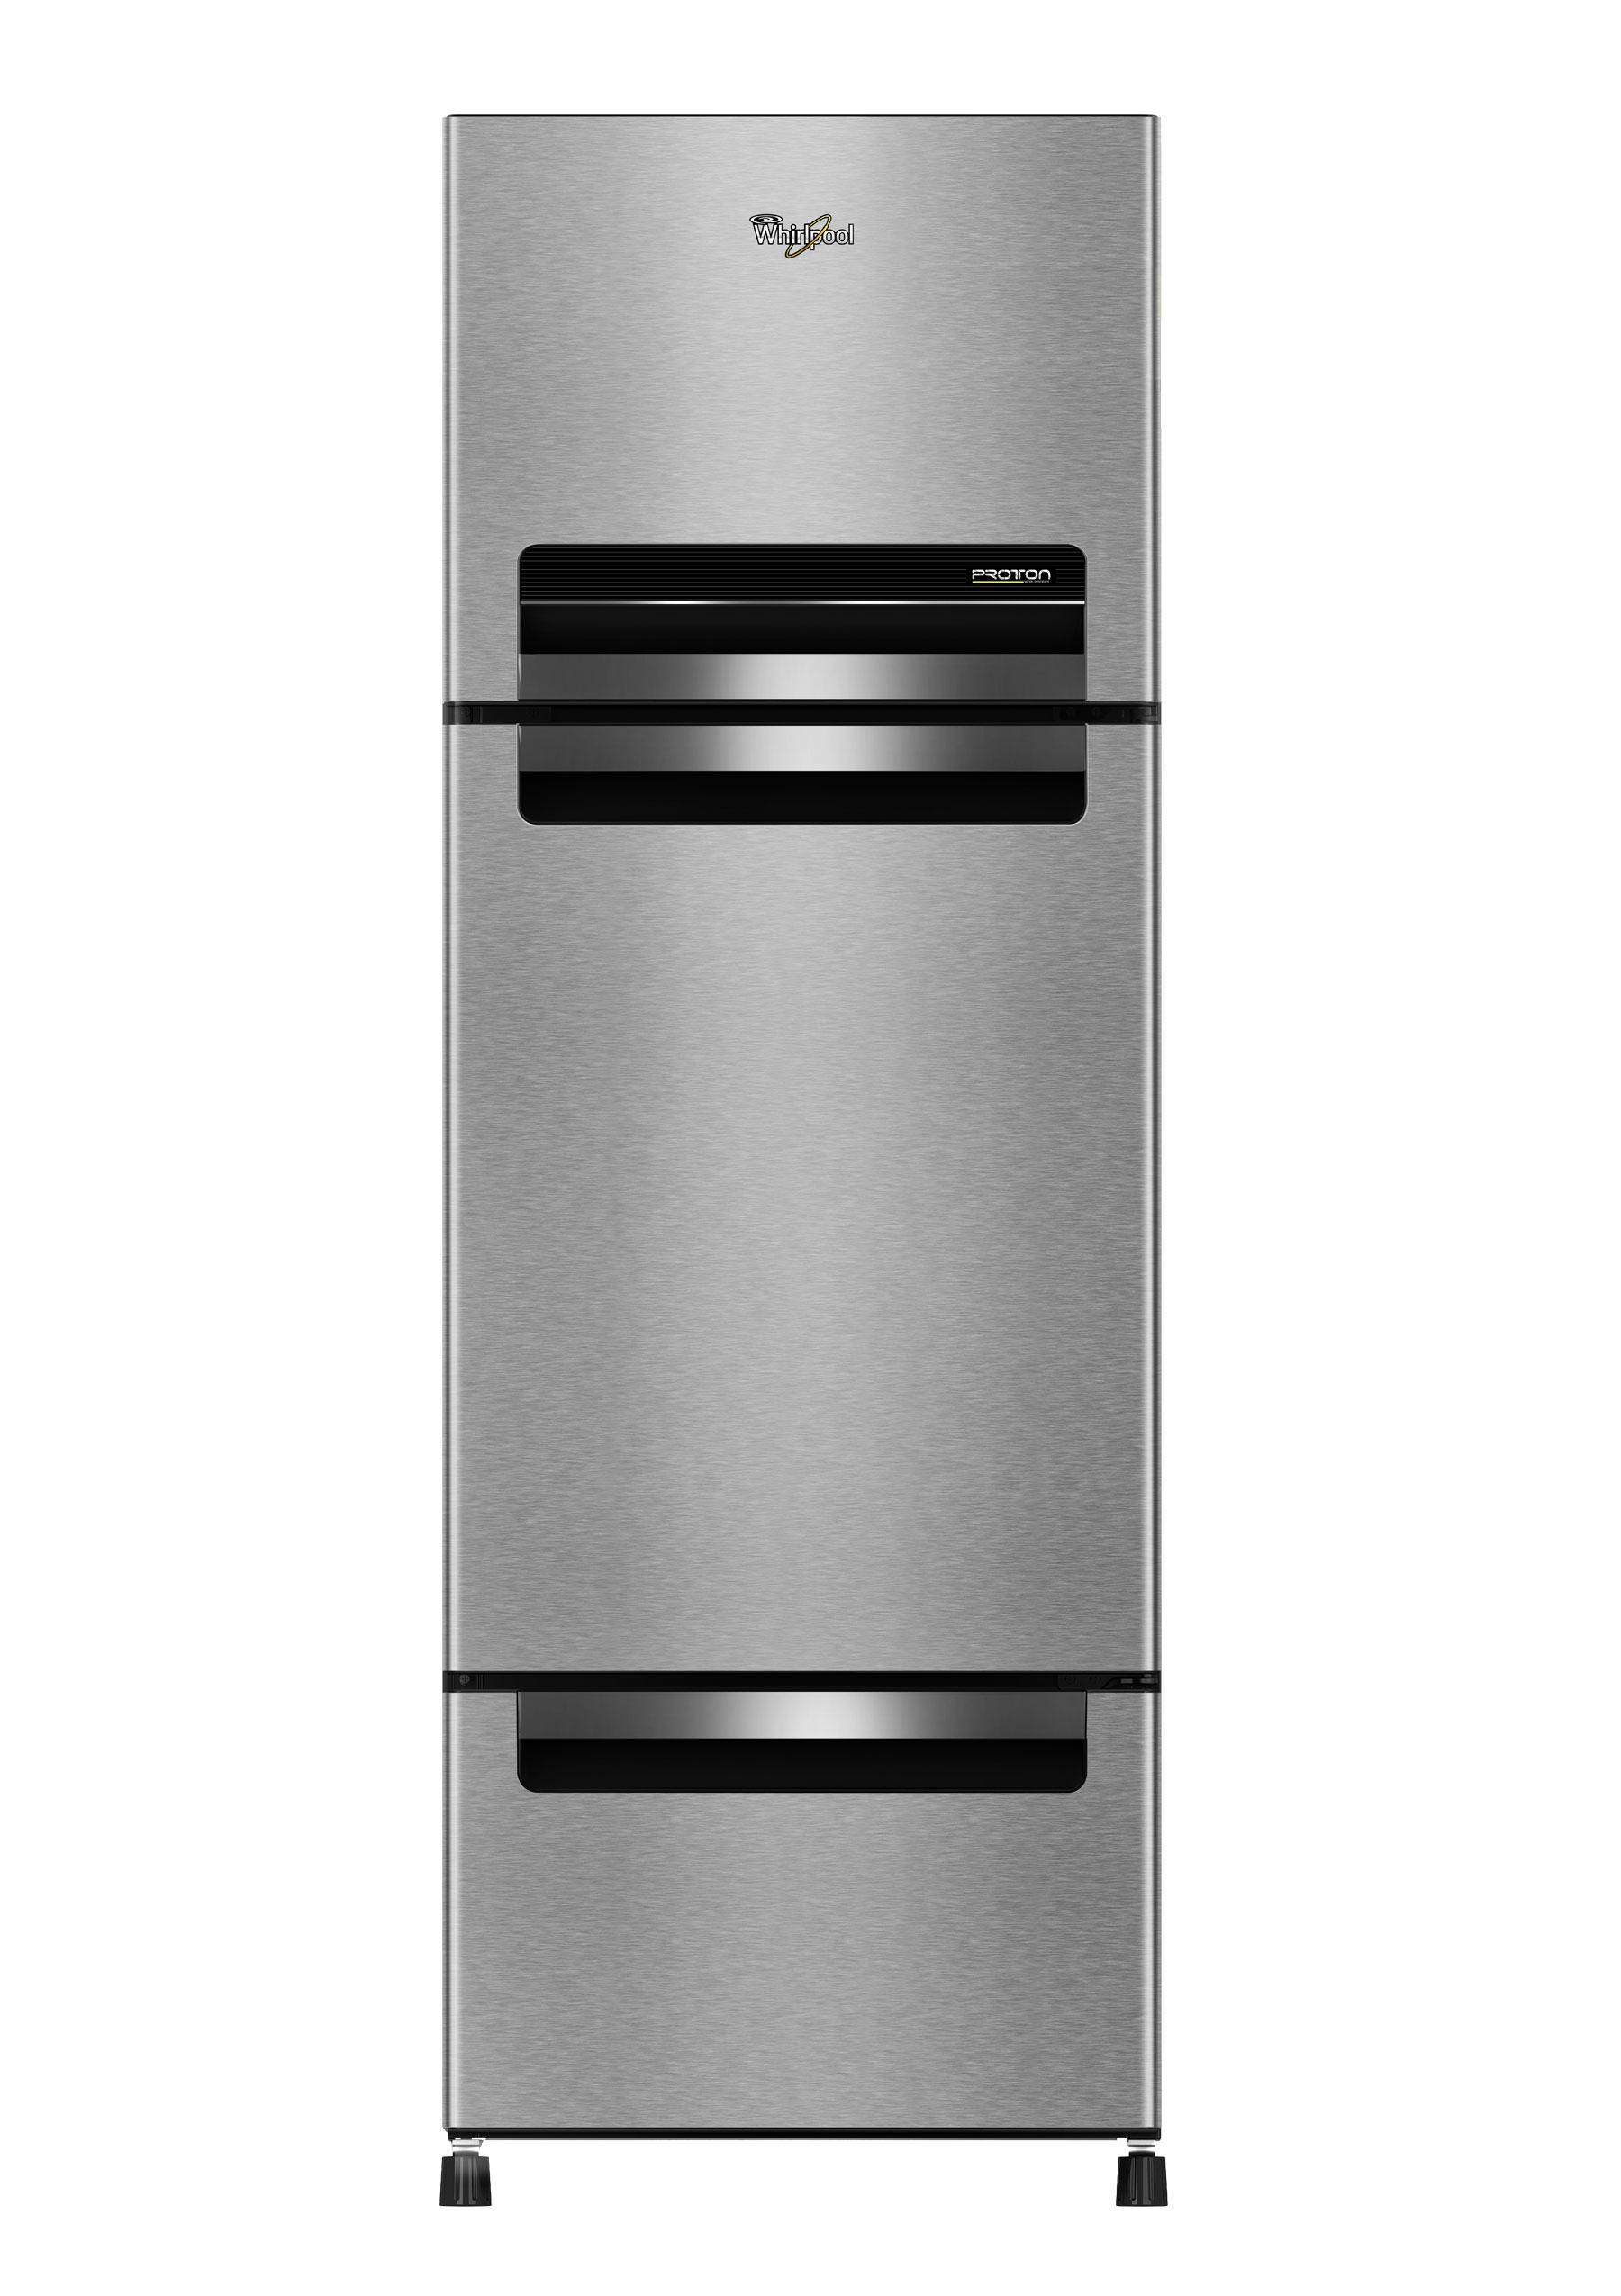 door black doors reviews samsung large litres refrigerator price and free tl double jul frost specifications